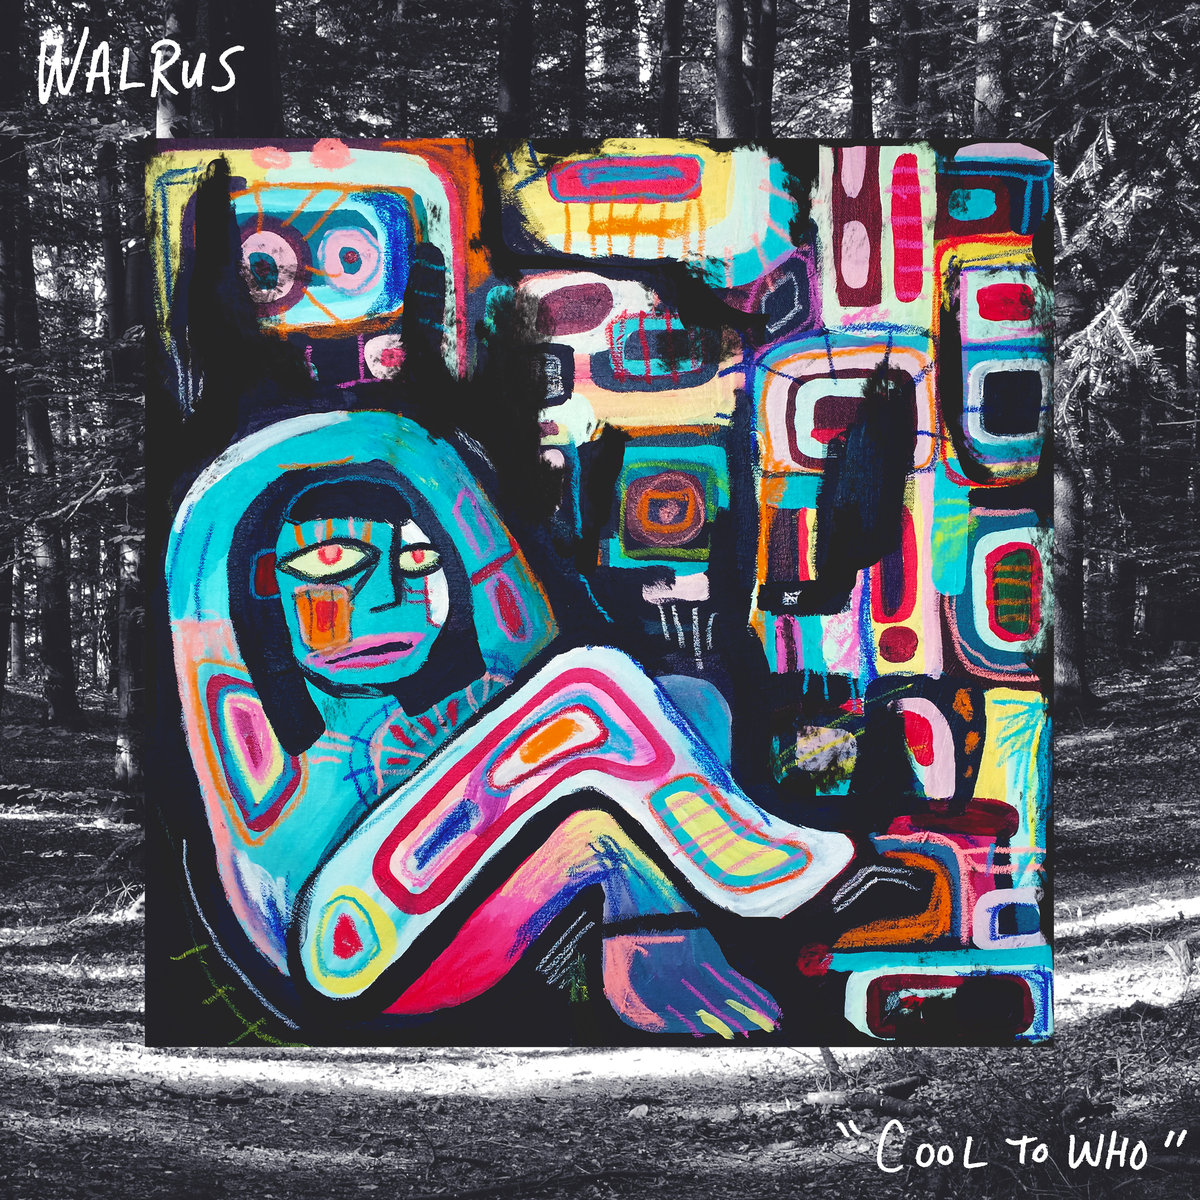 Walrus - Cool to Who